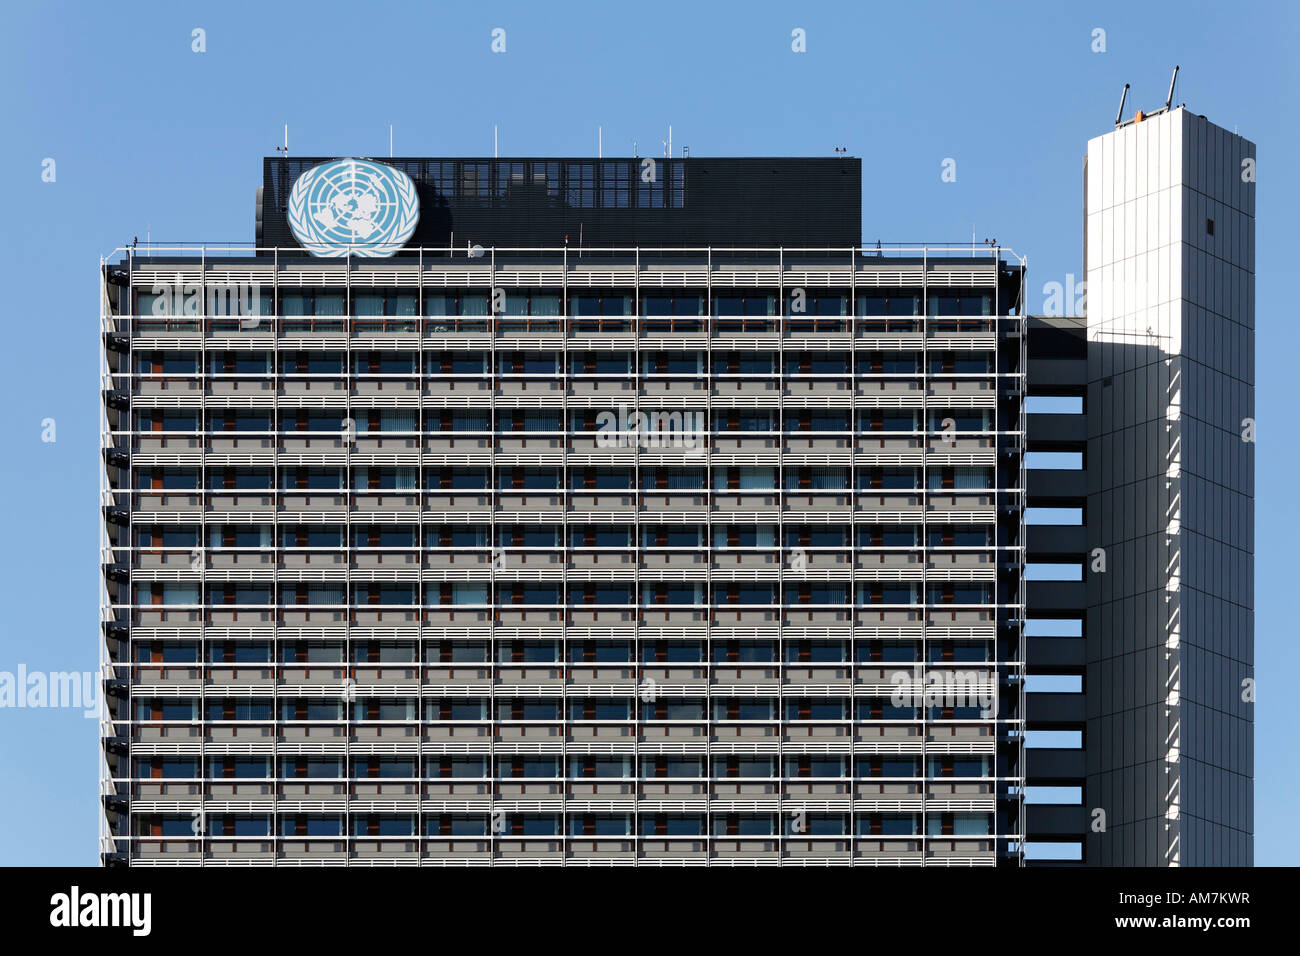 Former building of the members of the German Parliament, UN-logotype at the top, Bonn, NRW, Germany, - Stock Image